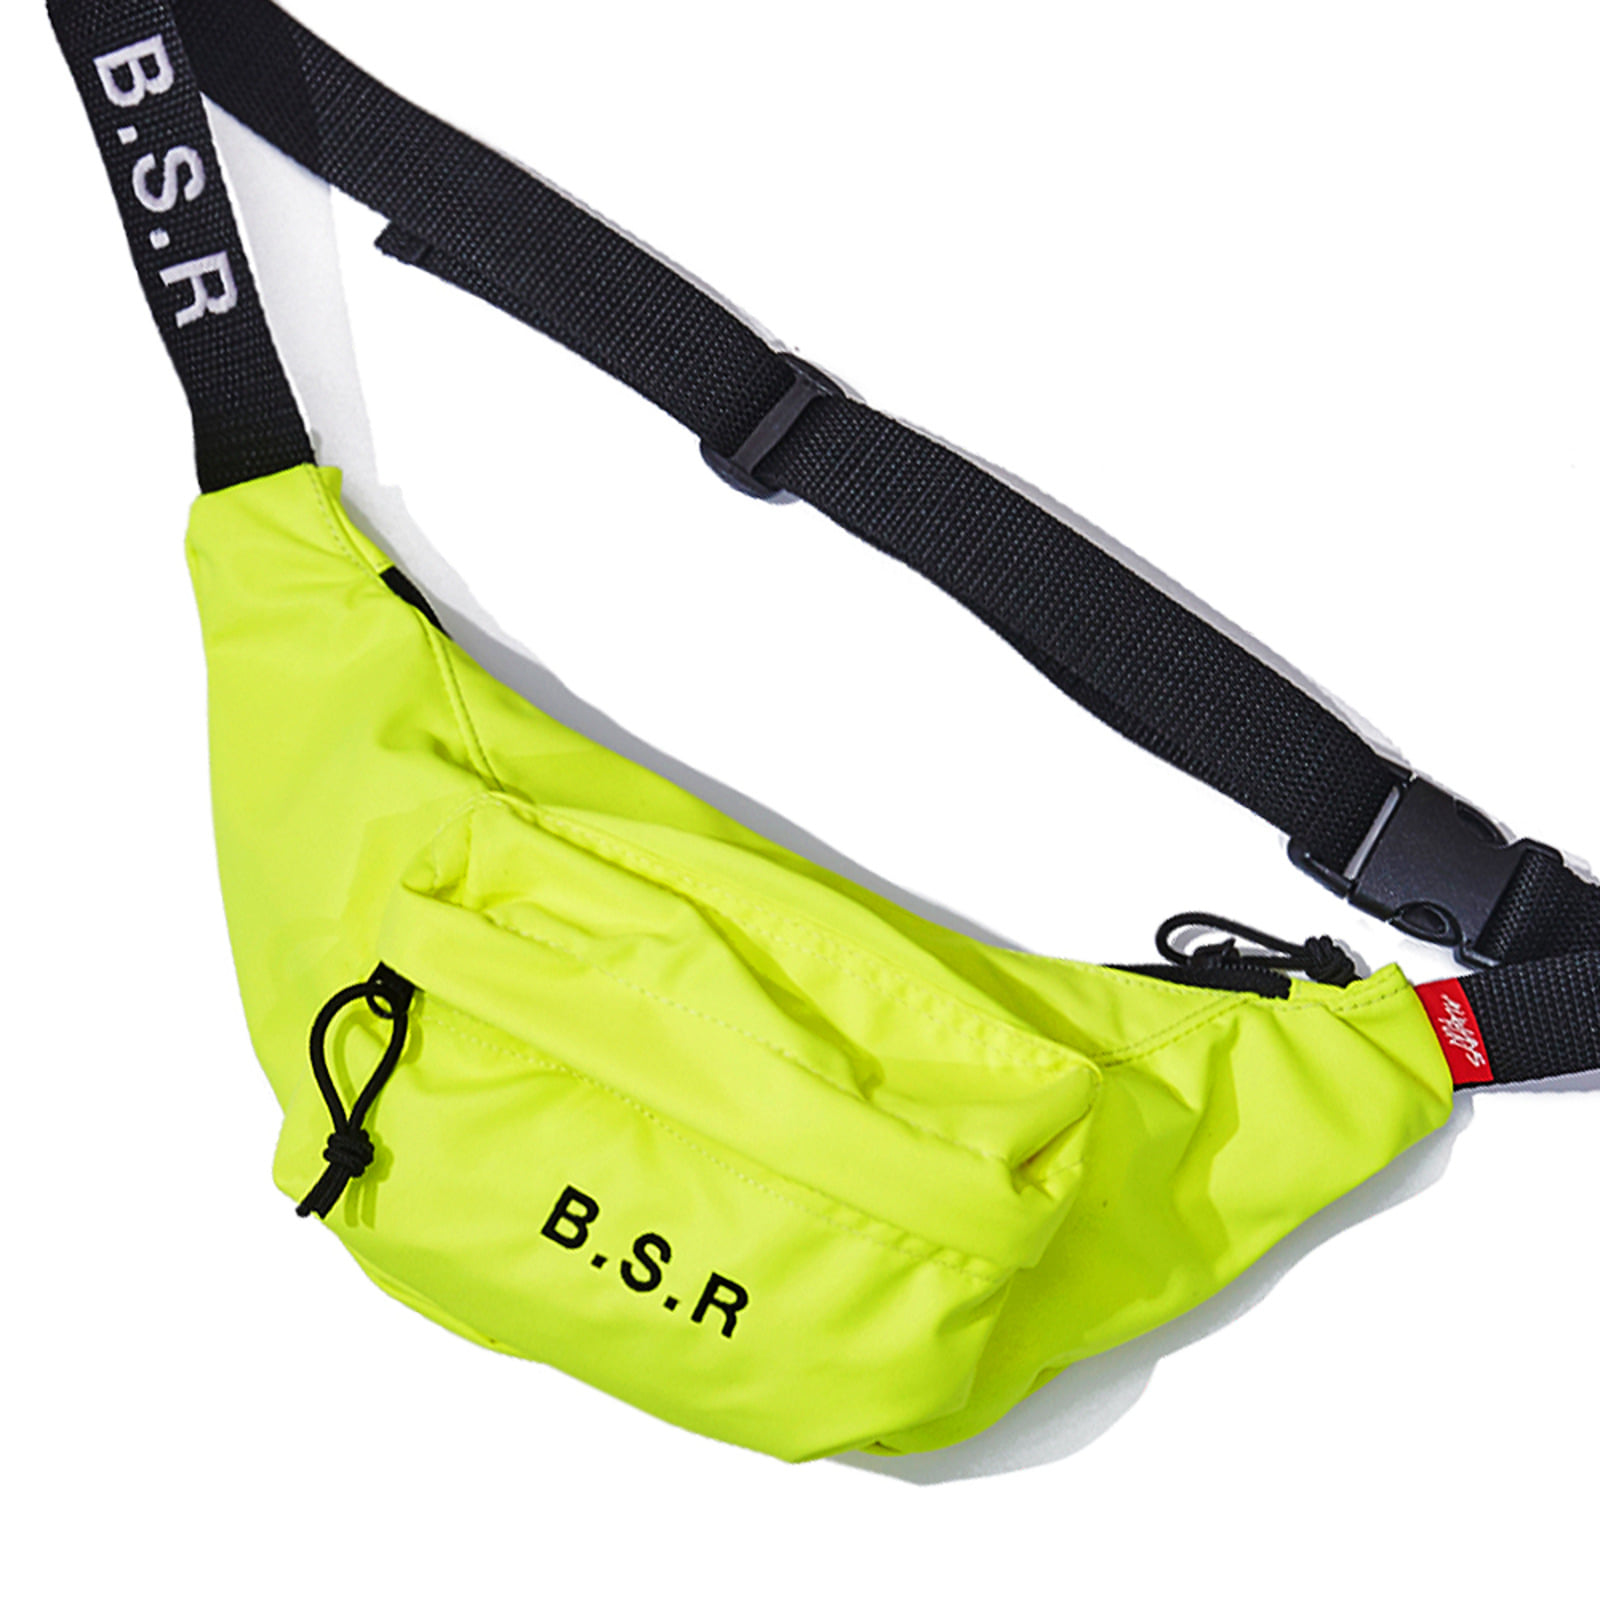 BSR POCKET WAISTBAG LIGHTGREEN